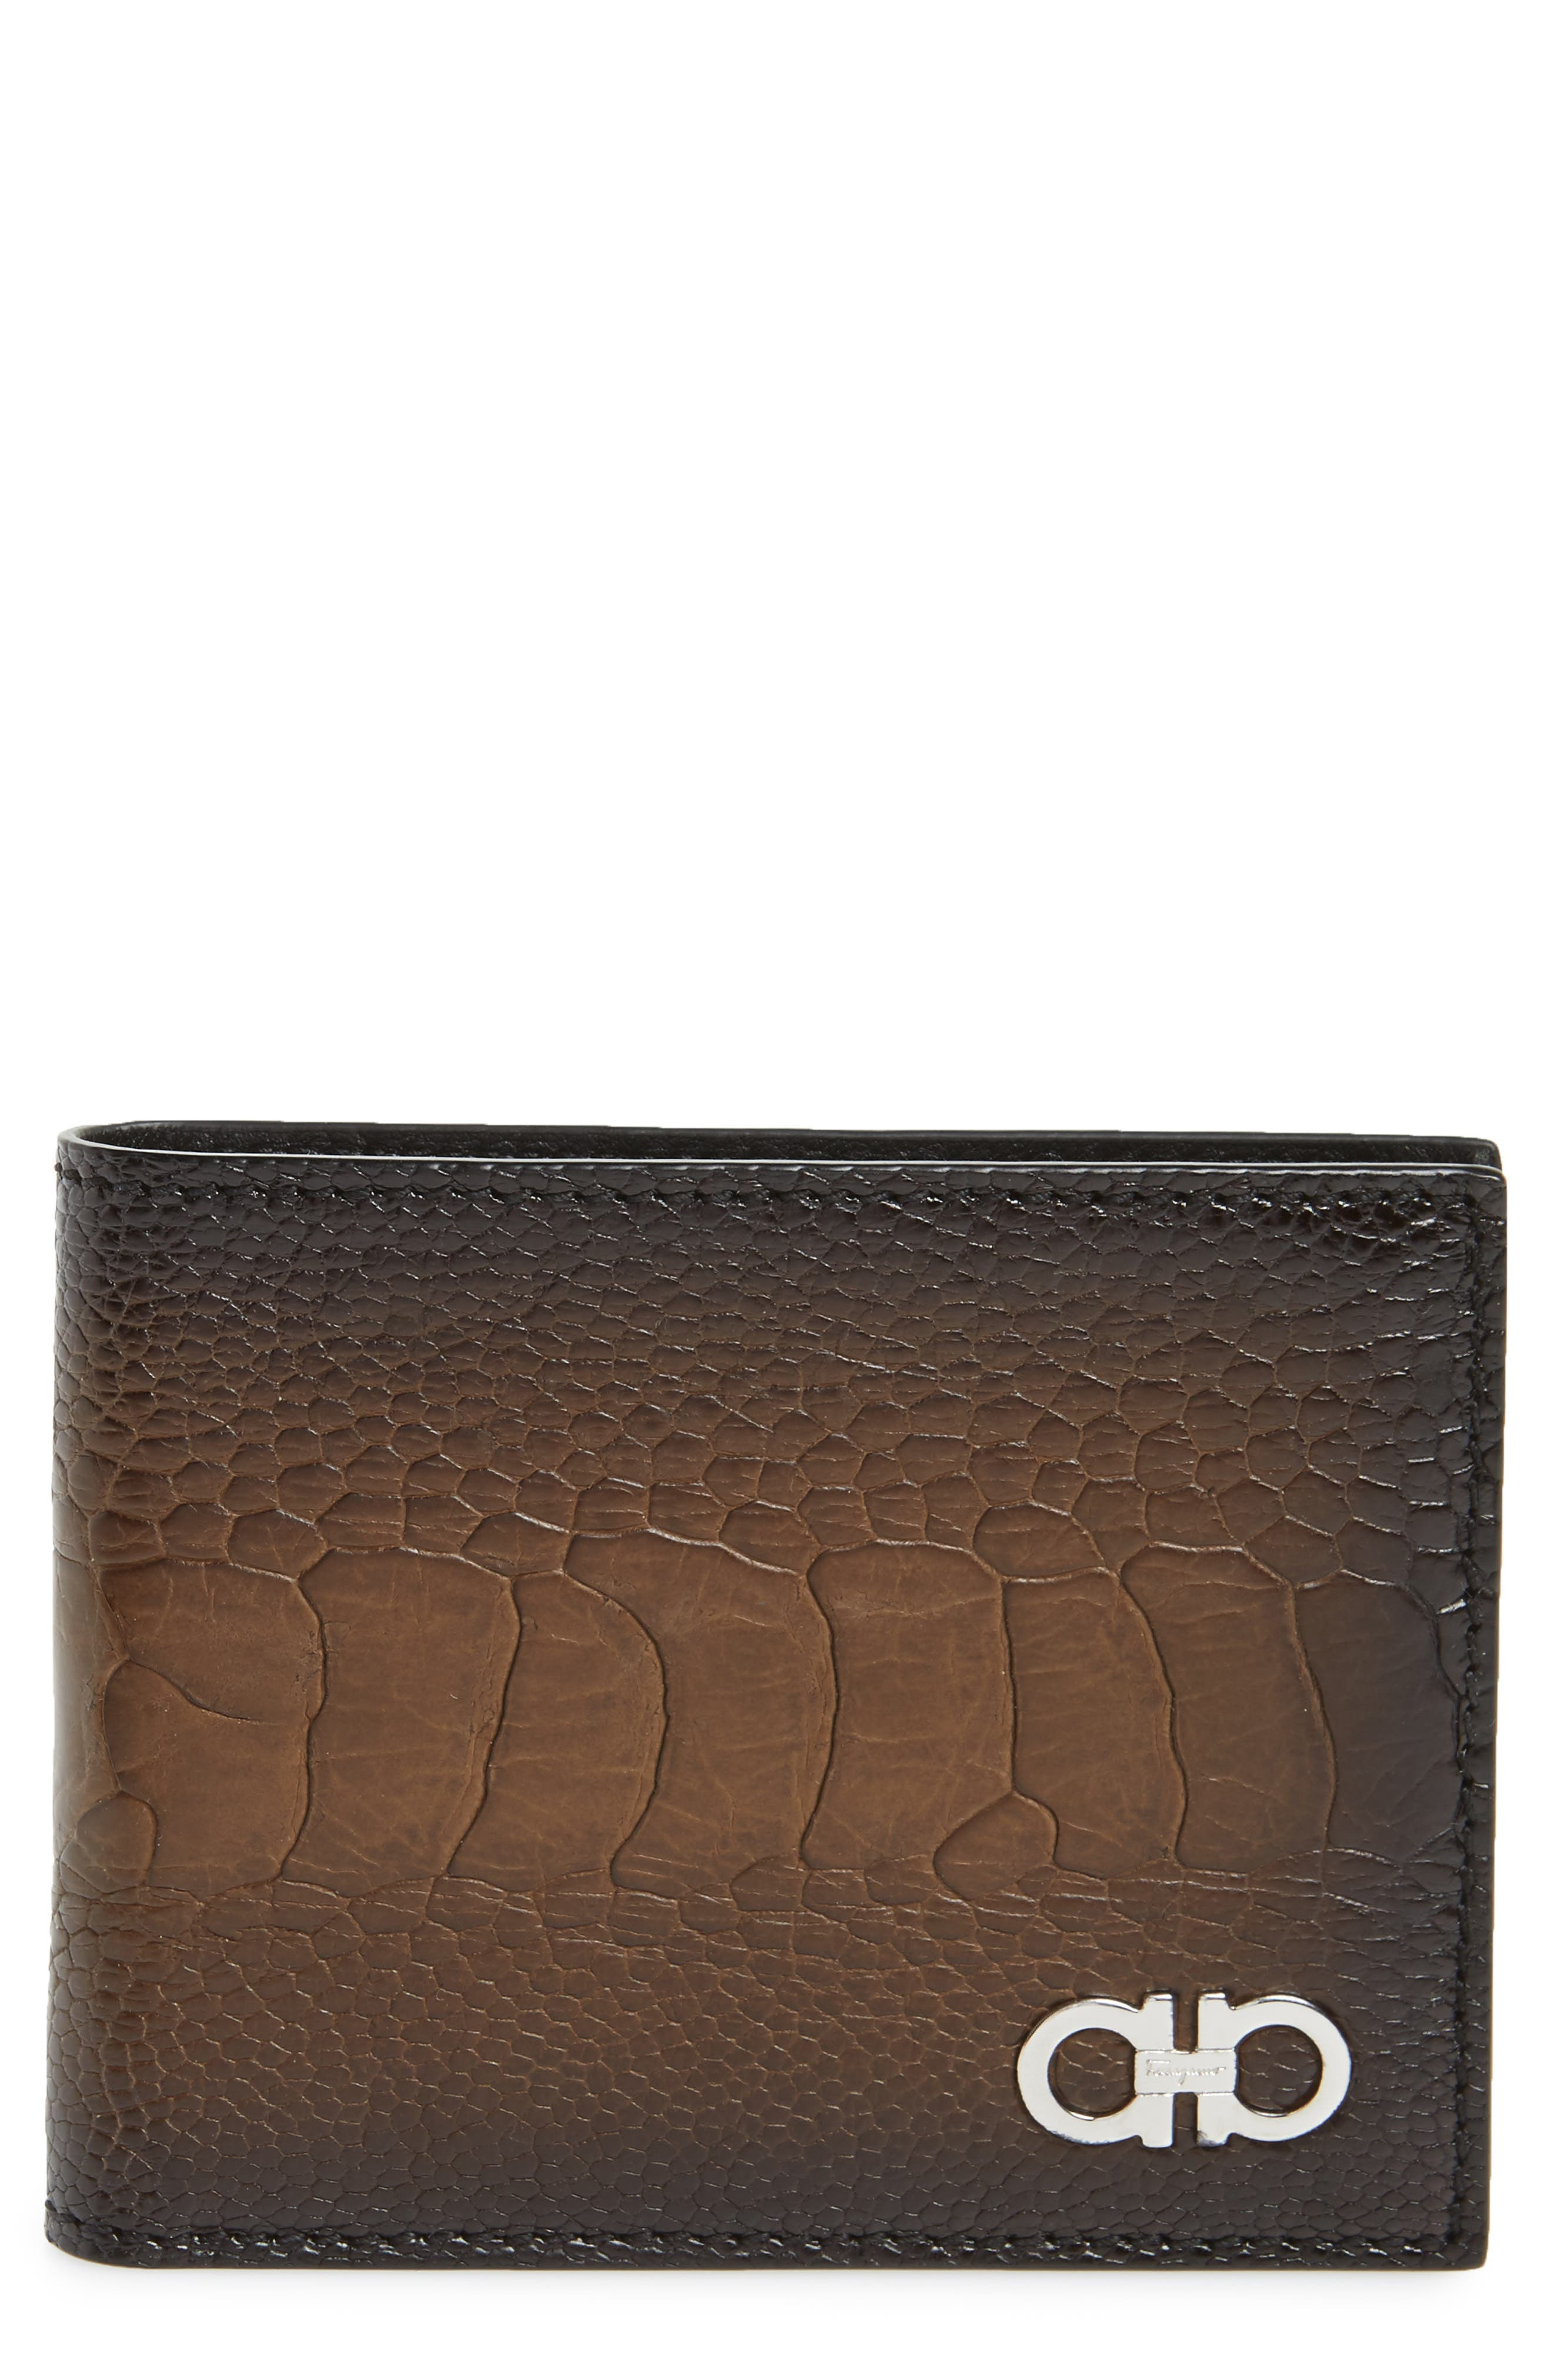 Leather Wallet,                             Main thumbnail 1, color,                             Sepia